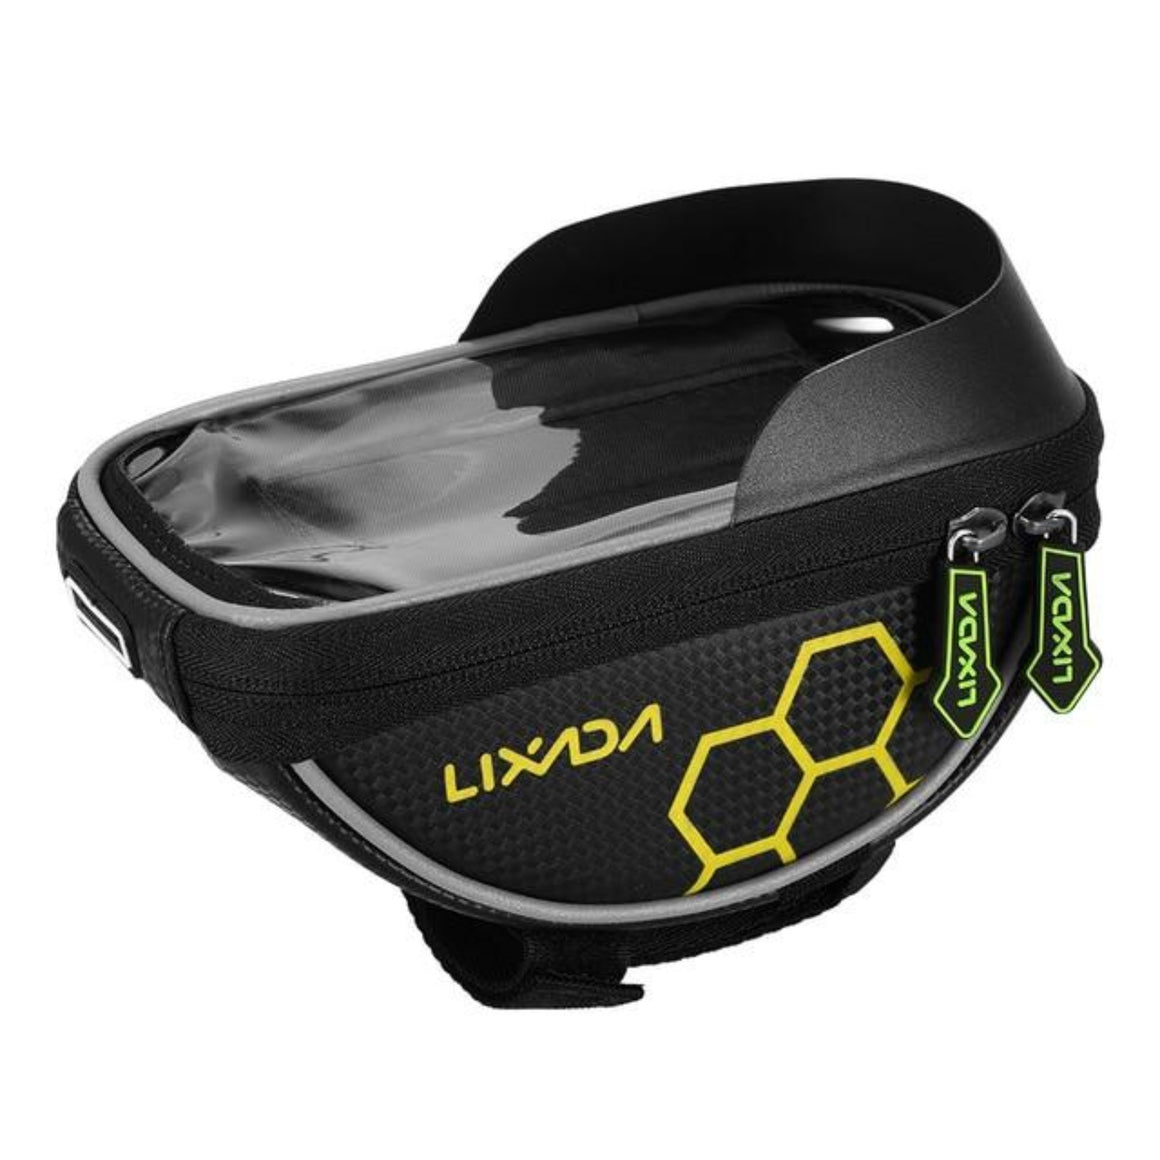 Lixada Bicycle Bag Cycling Bike Frame Phone Bag Pannier Smartphone & GPS Touch Screen Case Bicycle Accessories For 6 Inch Phone